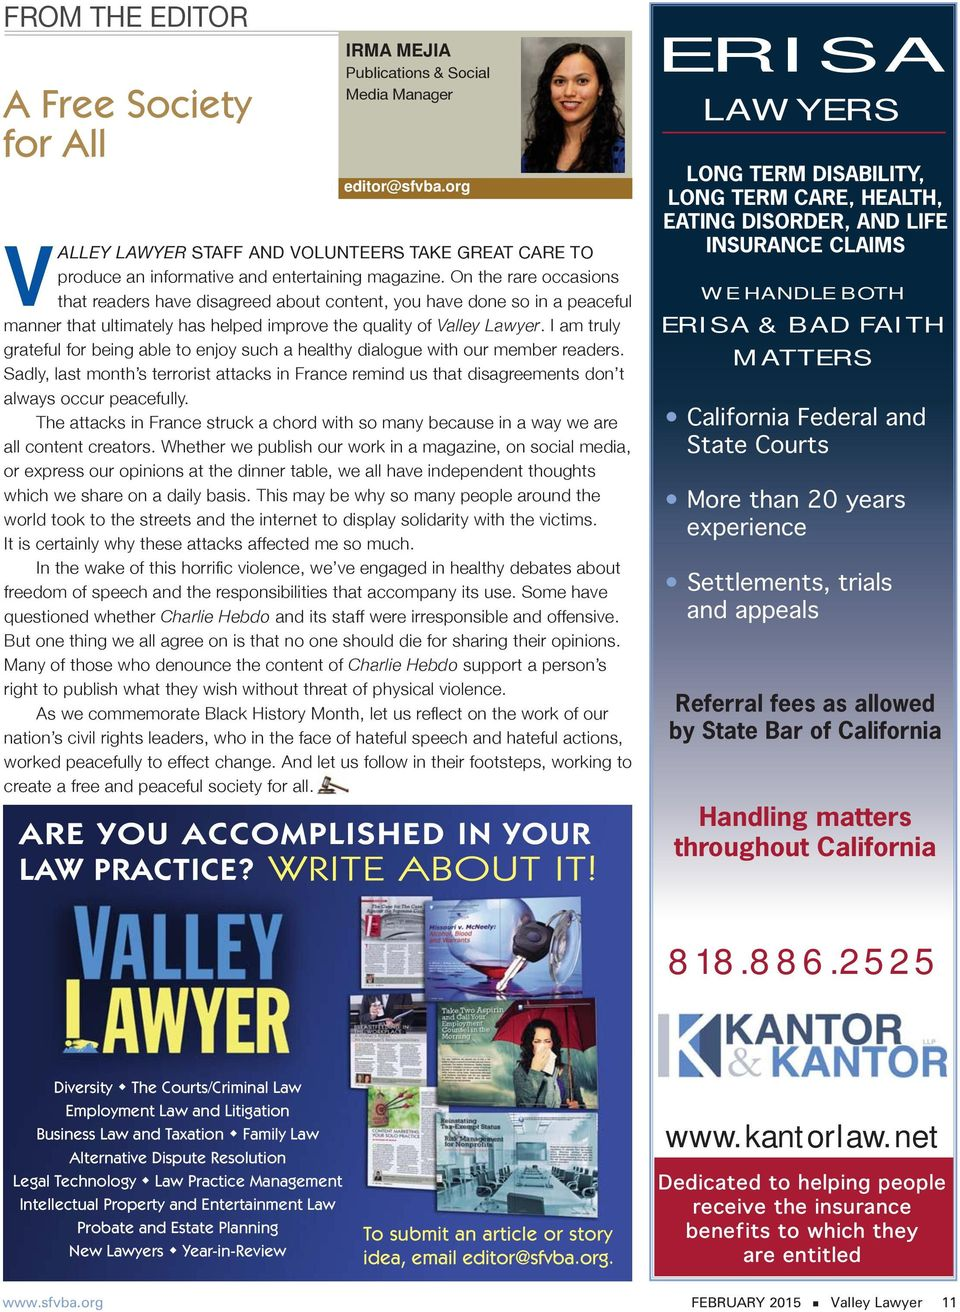 On the rare occasions that readers have disagreed about content, you have done so in a peaceful manner that ultimately has helped improve the quality of Valley Lawyer.